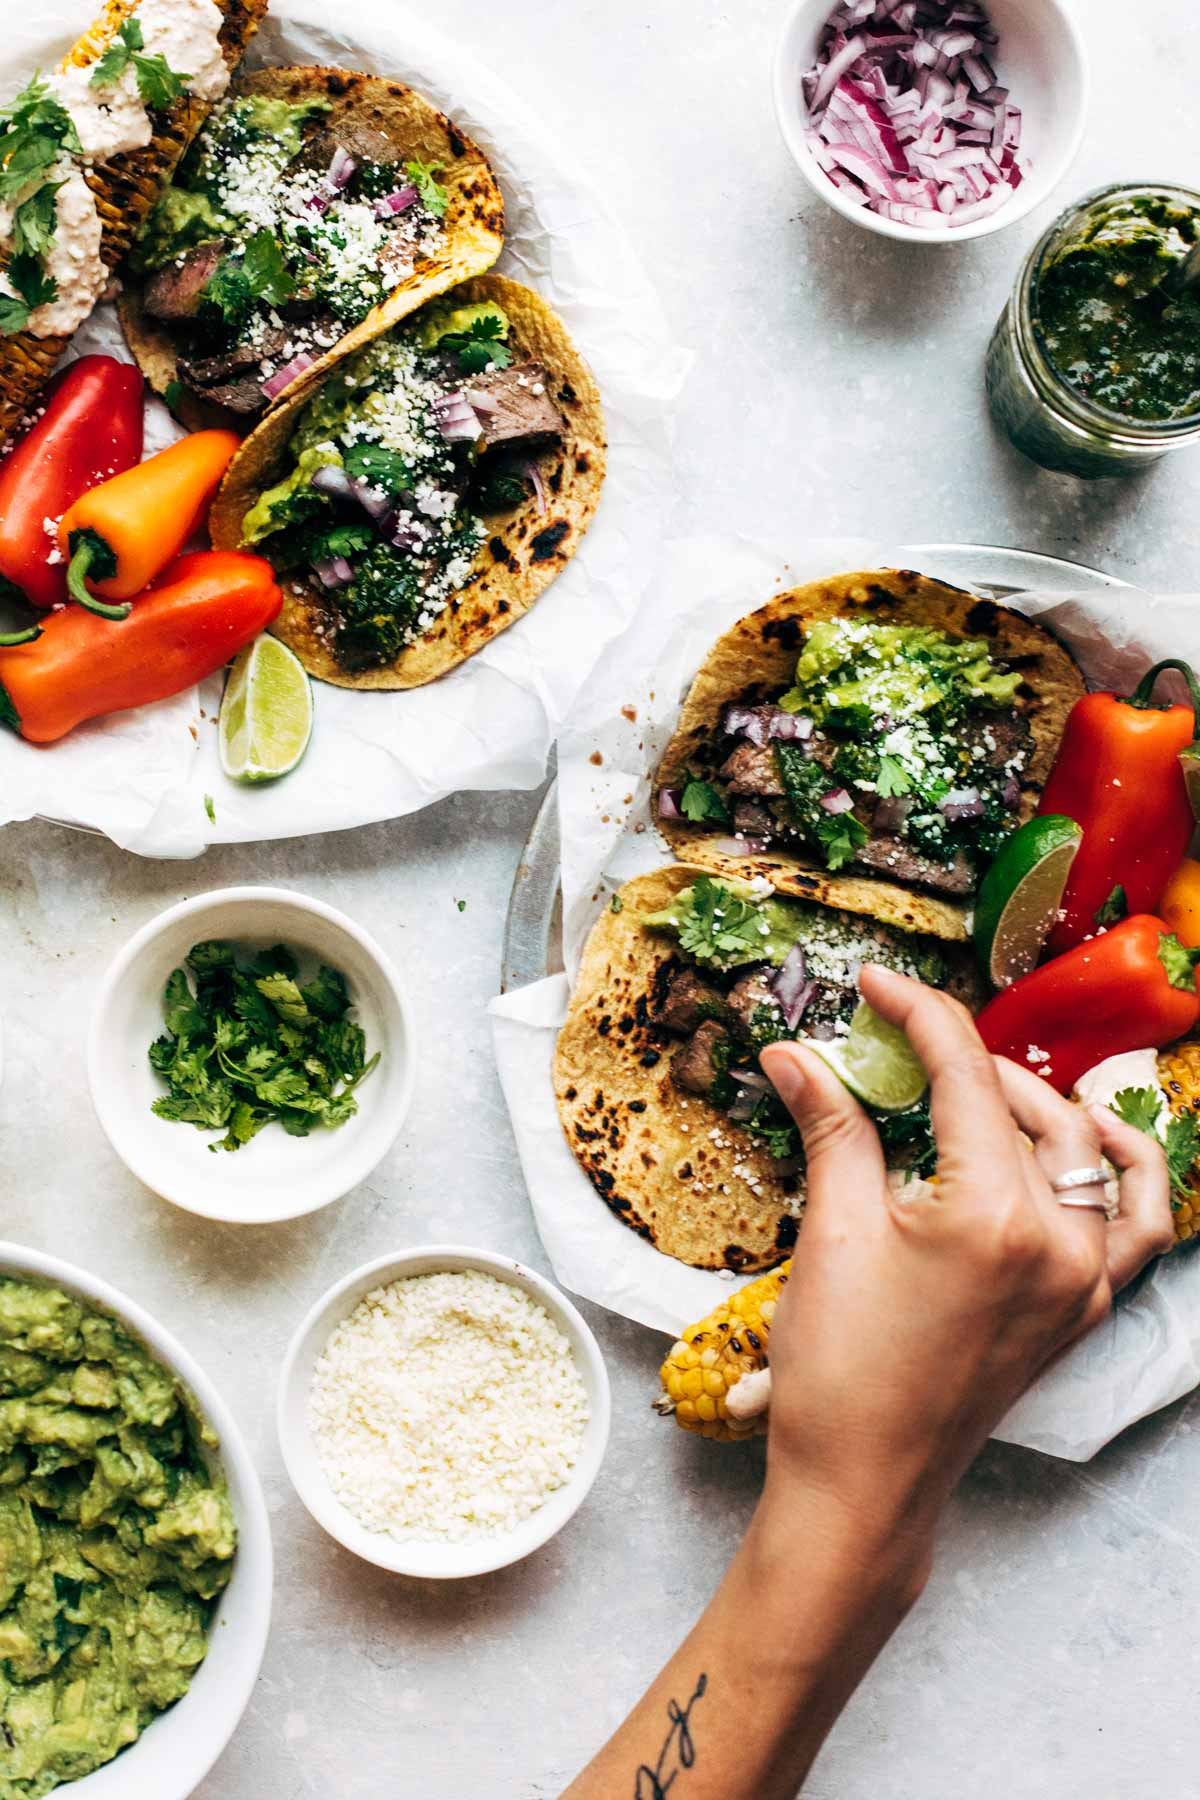 Cool Mom Eats weekly meal plan: Chimichurri Steak Tacos at Pinch of Yum